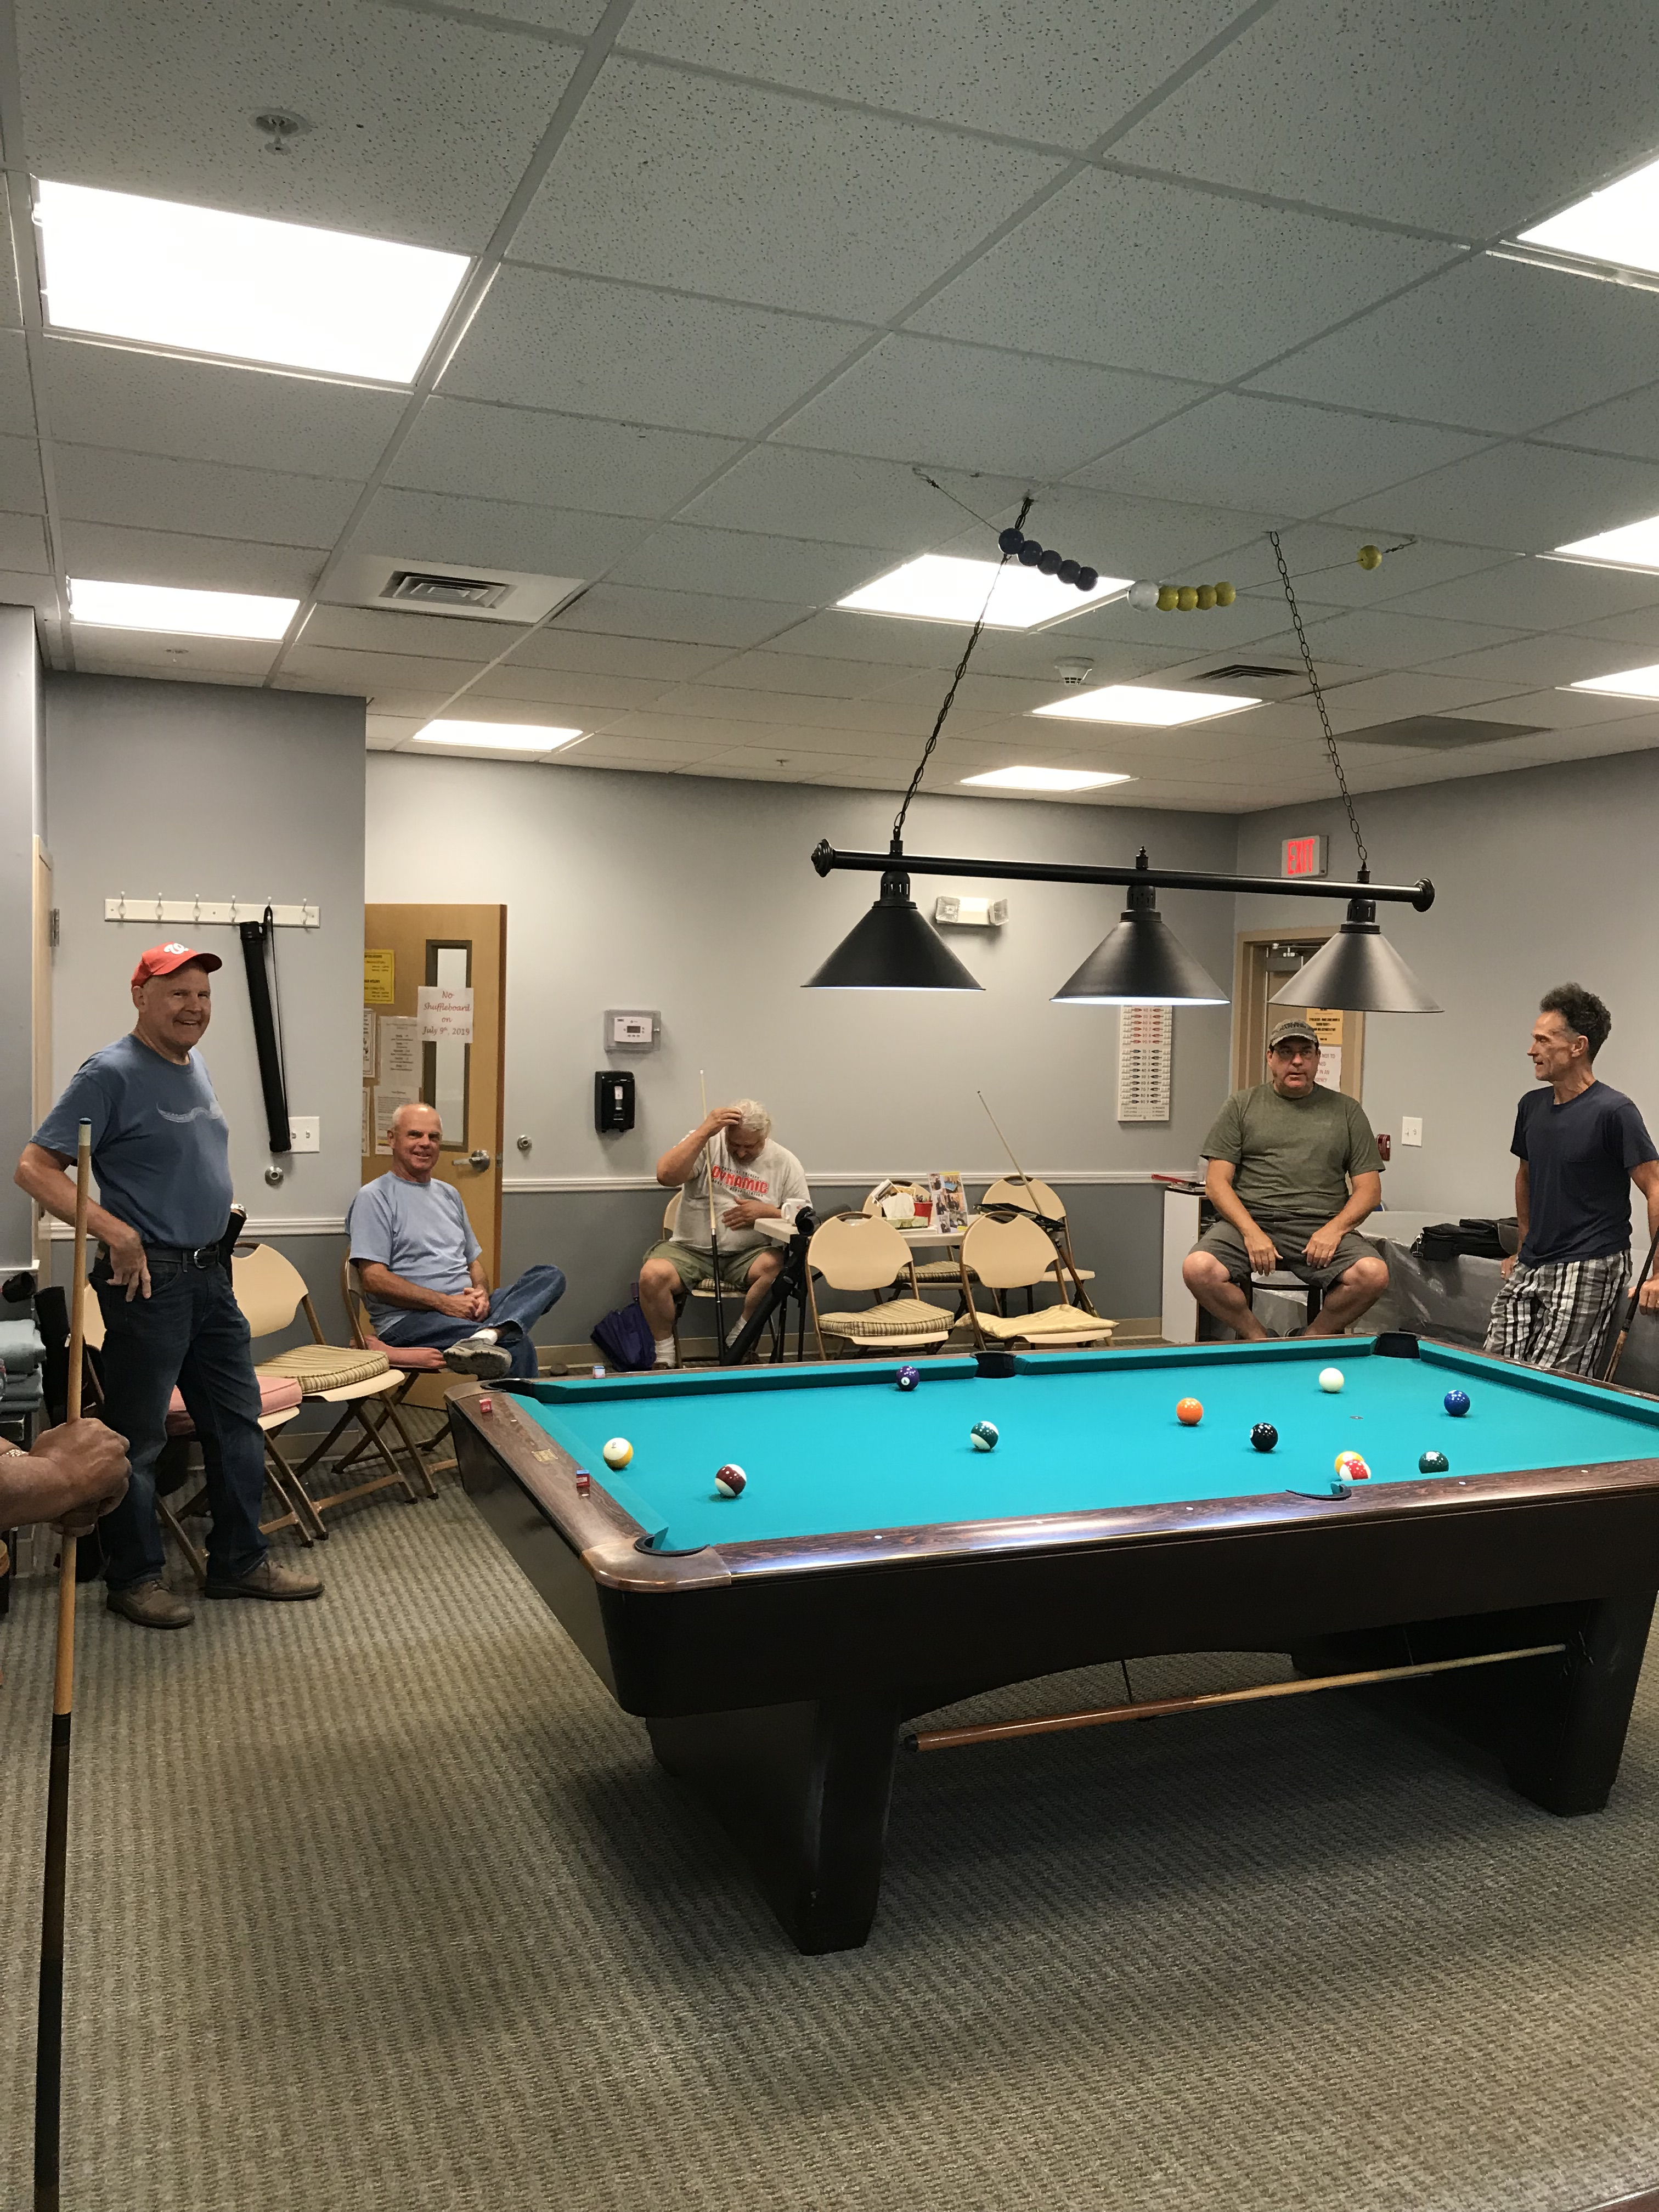 Billiard Leagues | Indian River Senior Center is located